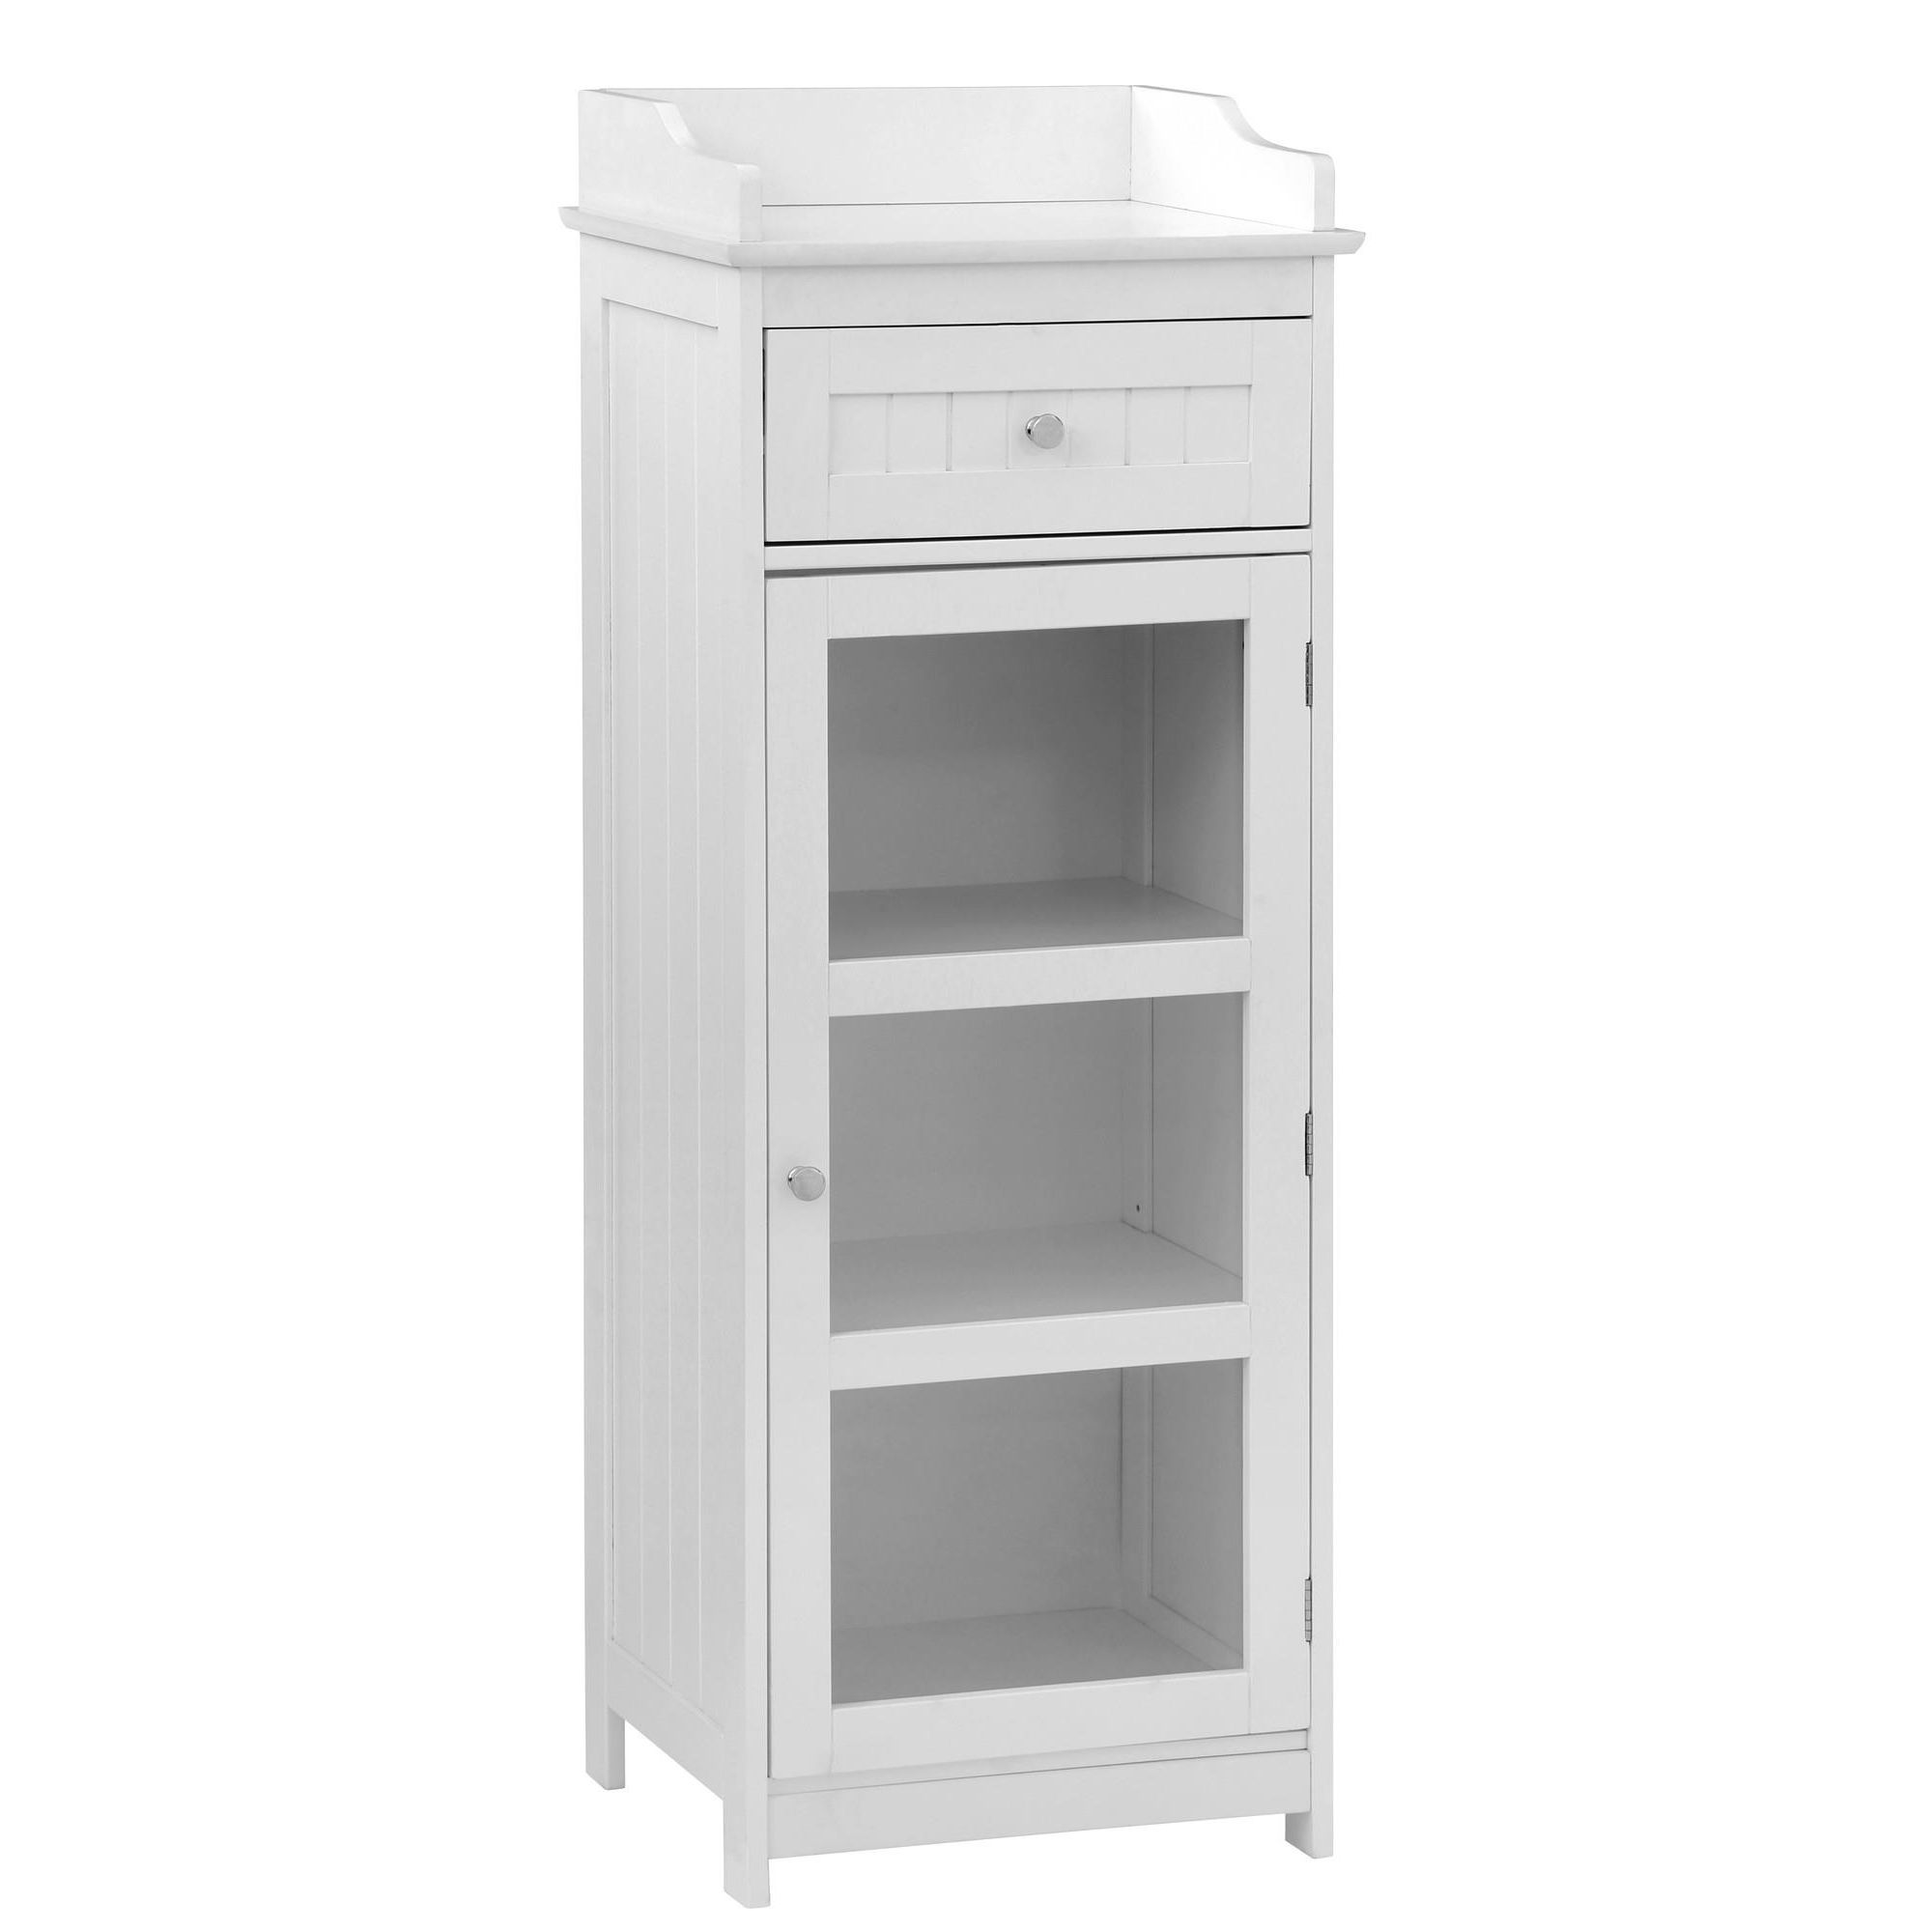 Premier Housewares Floor Standing Cabinet Bathroom Cupboards For Your Home